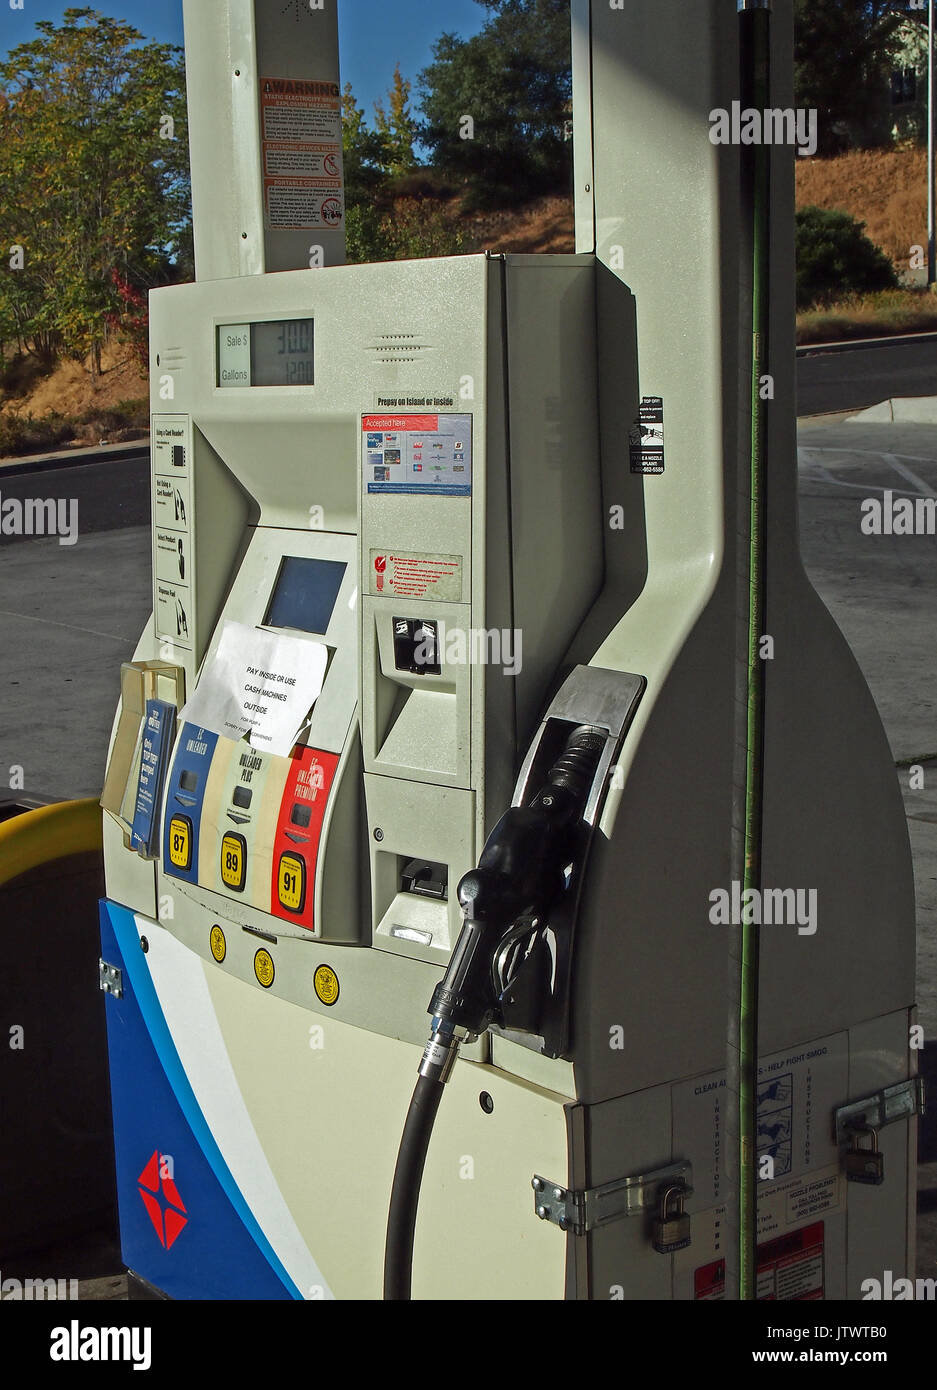 Arco Gas Station >> Arco Gas Station Pump At Ampm Store California Stock Photo